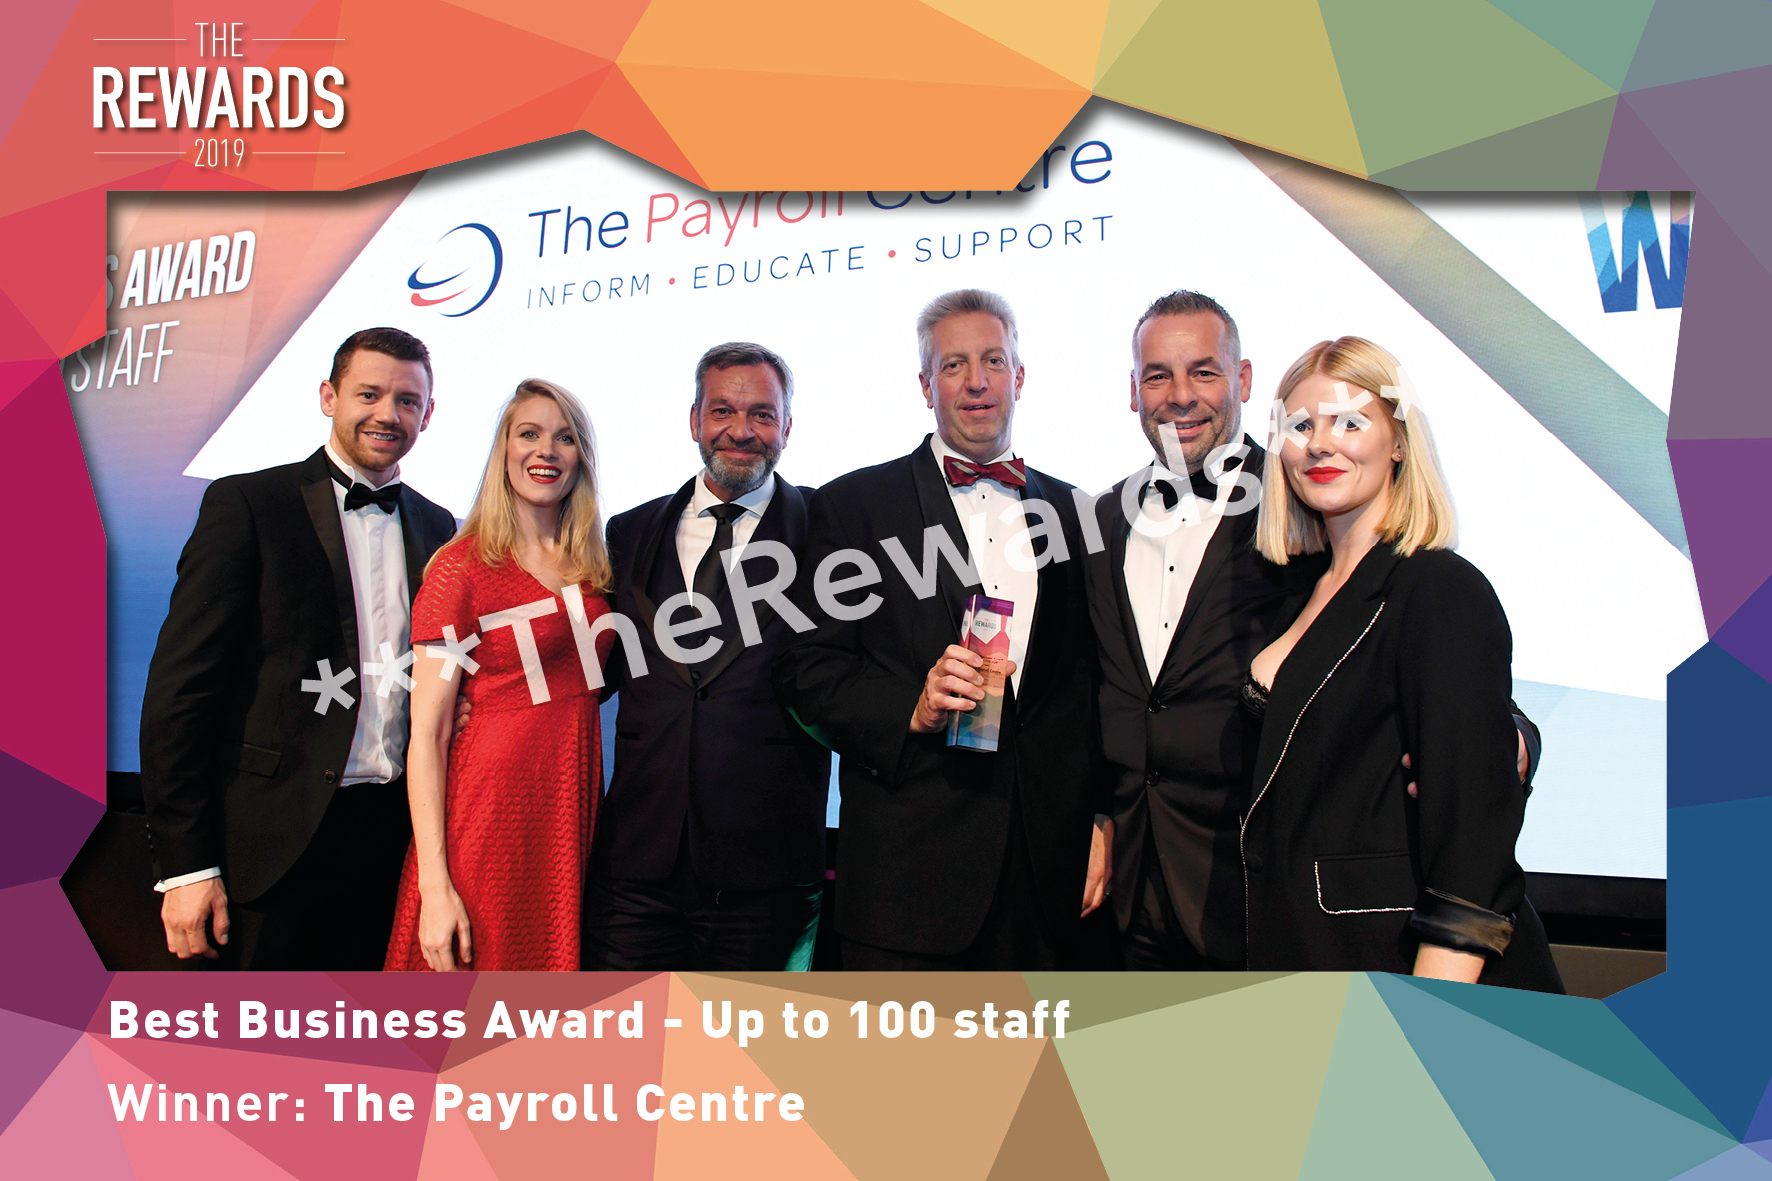 Best Business Award - Up to 100 staff